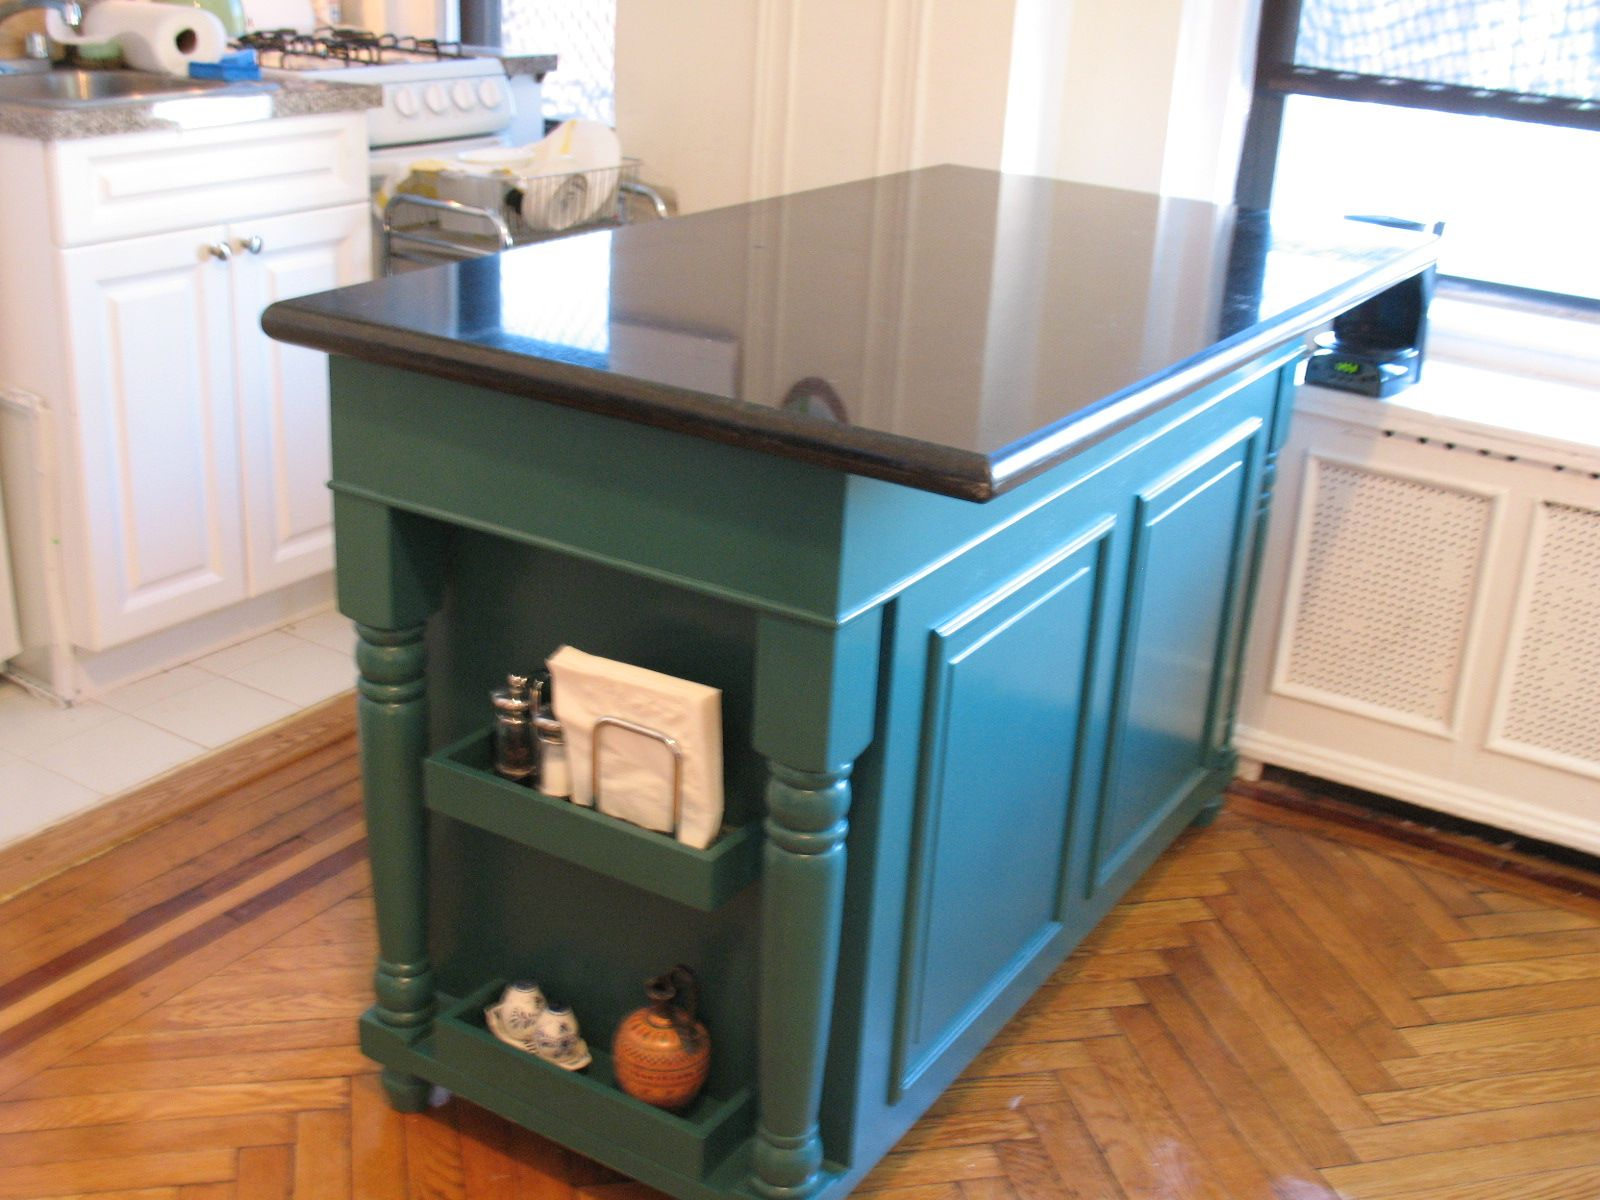 Pleasant Black Gloss Granite Countertop On Teal Butcher Block Island ...